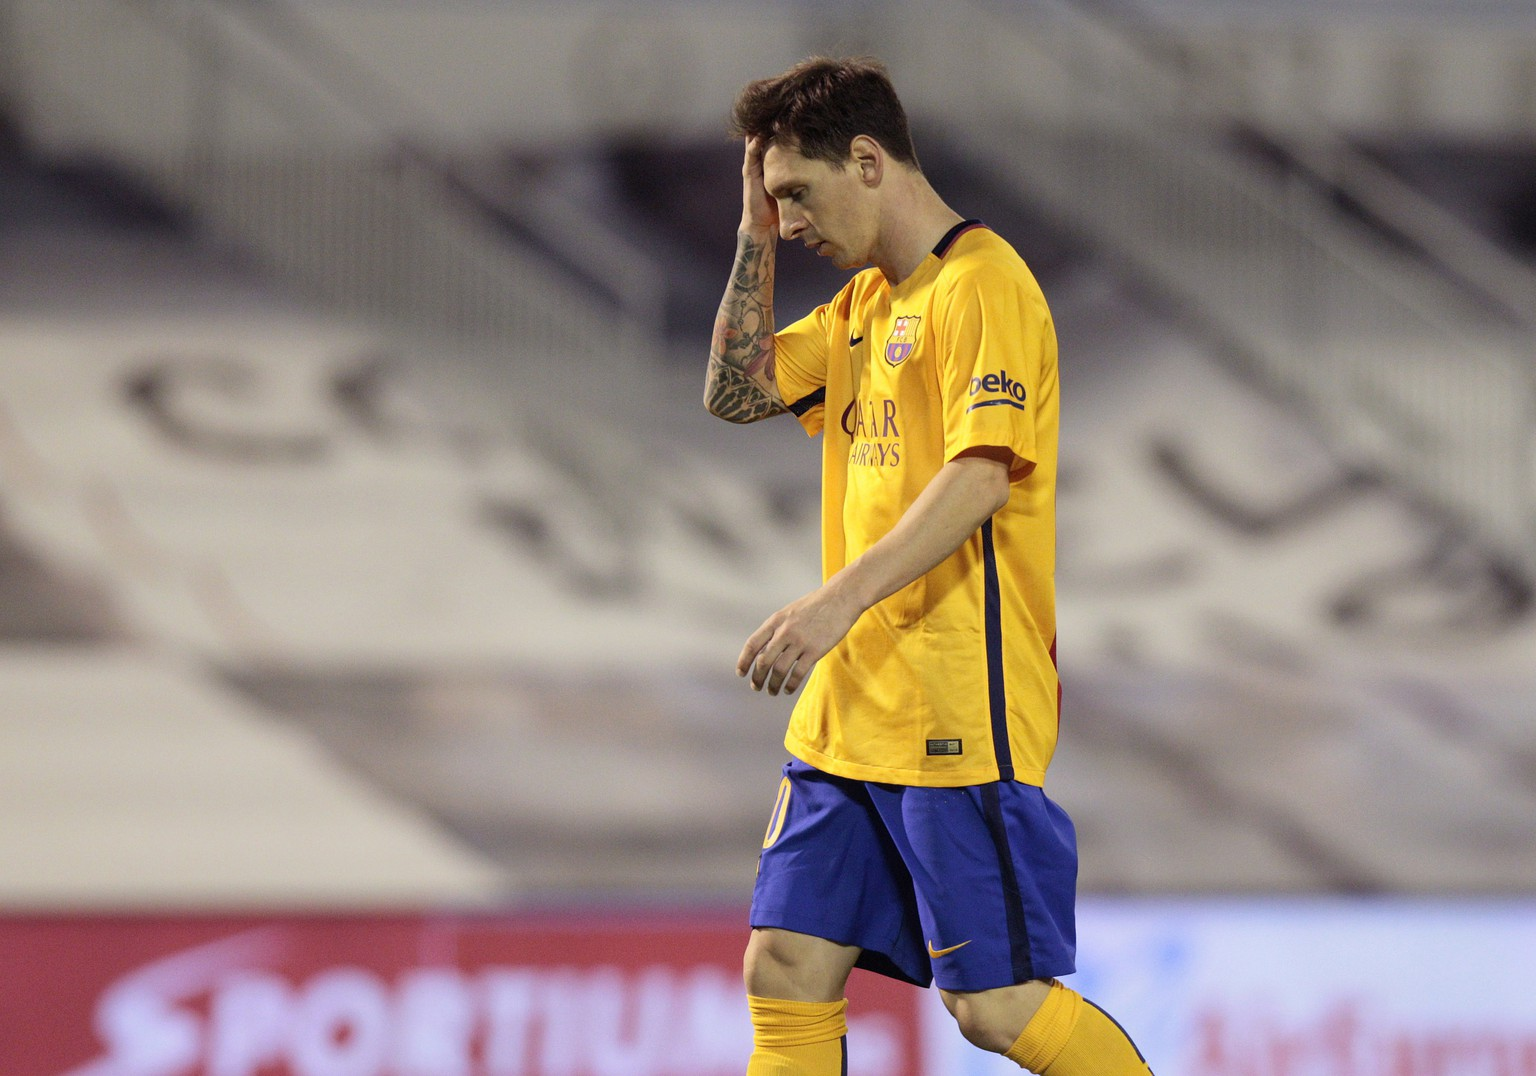 Barcelona's Lionel Messi from Argentina, gestures during a Spanish La Liga soccer match between RC Celta and FC Barcelona, at the Balaídos stadium in Vigo, Spain, Wednesday, Sept. 23, 2015. (AP Photo/Lalo R. Villar)